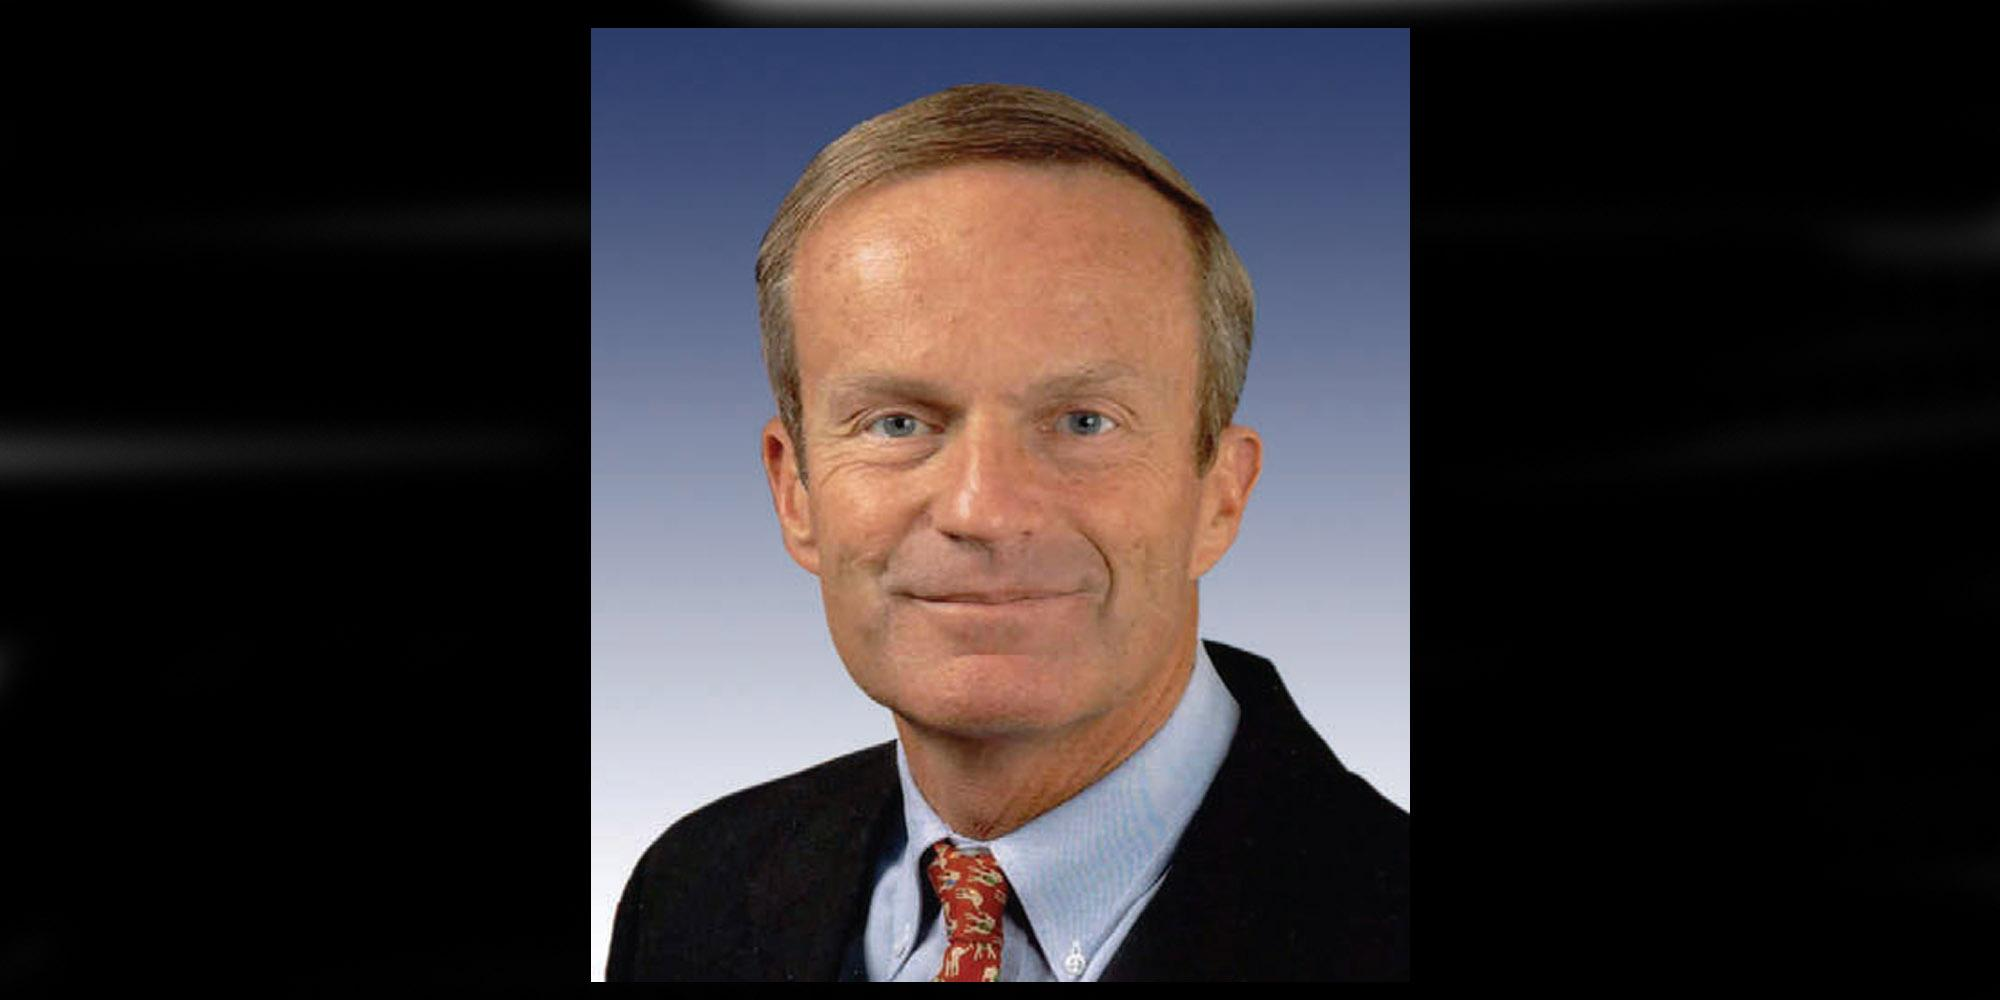 Todd Akin Congressman from Missouri.  Photo Courtesy of Wikimedia Commons